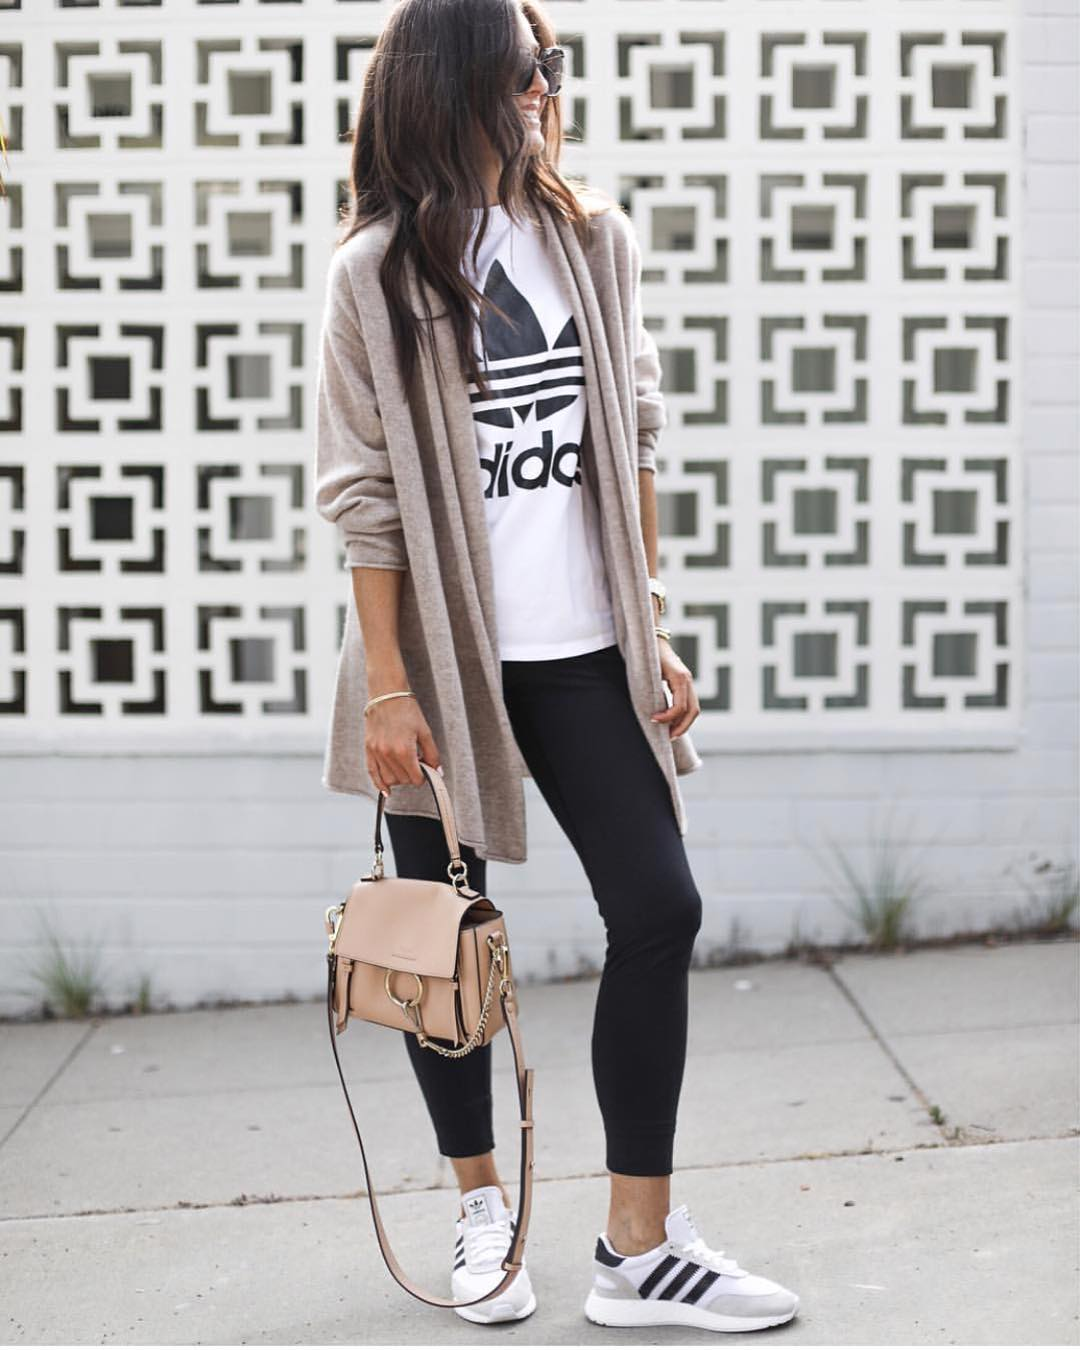 Sporty Casual Style For Fall: Long Cardigan, Leggings And Sneakers 2020